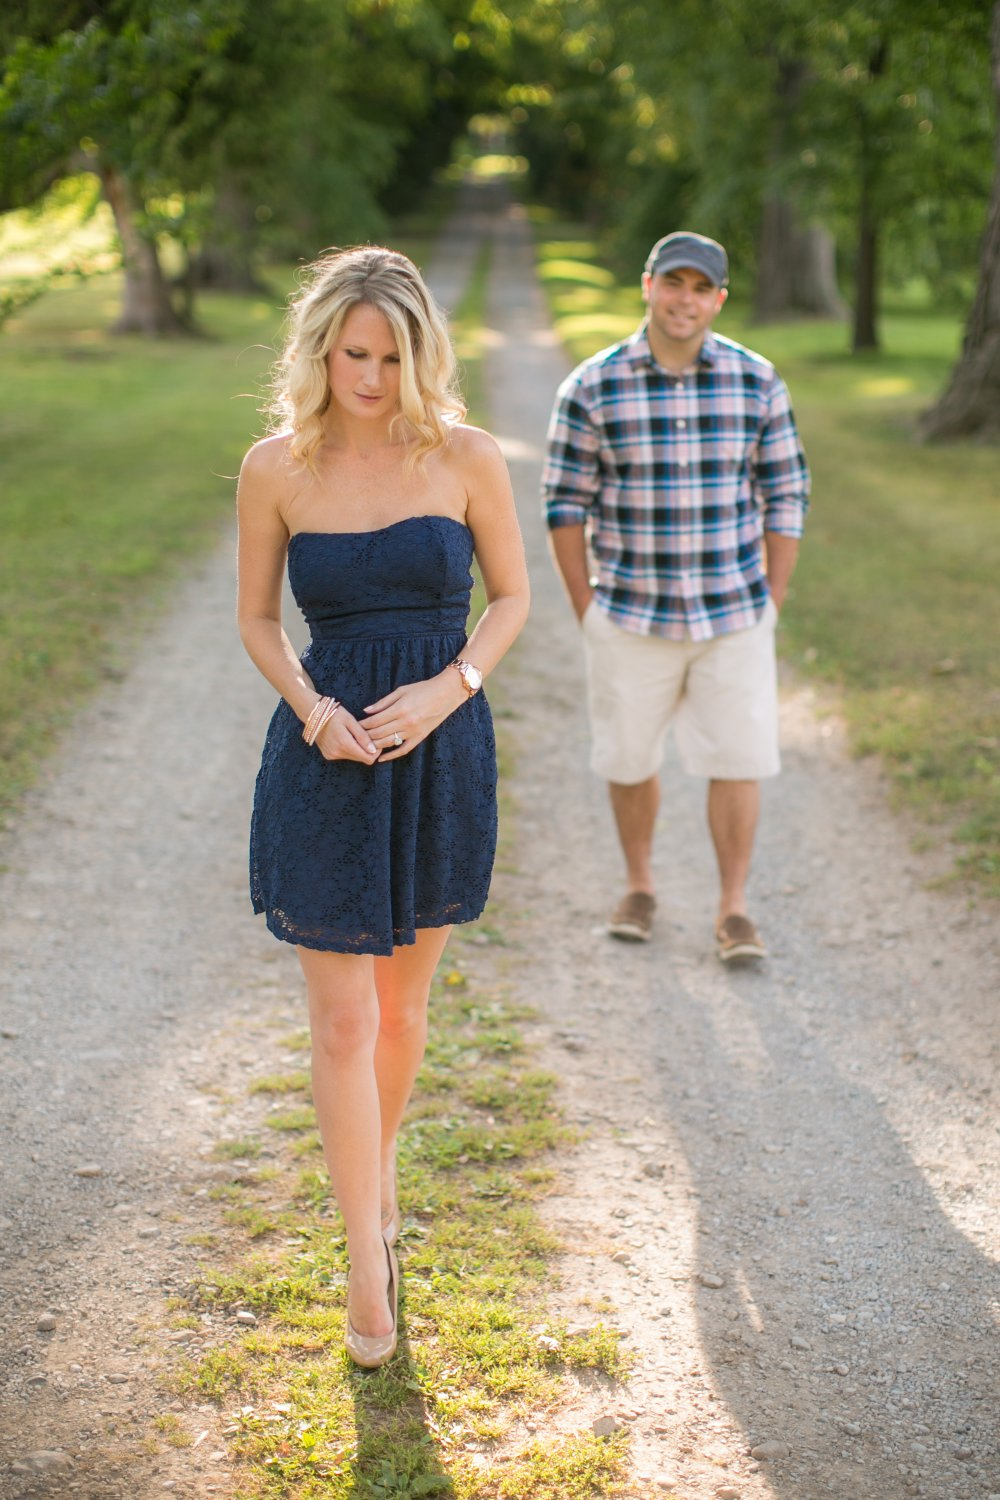 JF Hannigan Photography Engagement Session: Jenna and Brad: from shore to shore 8